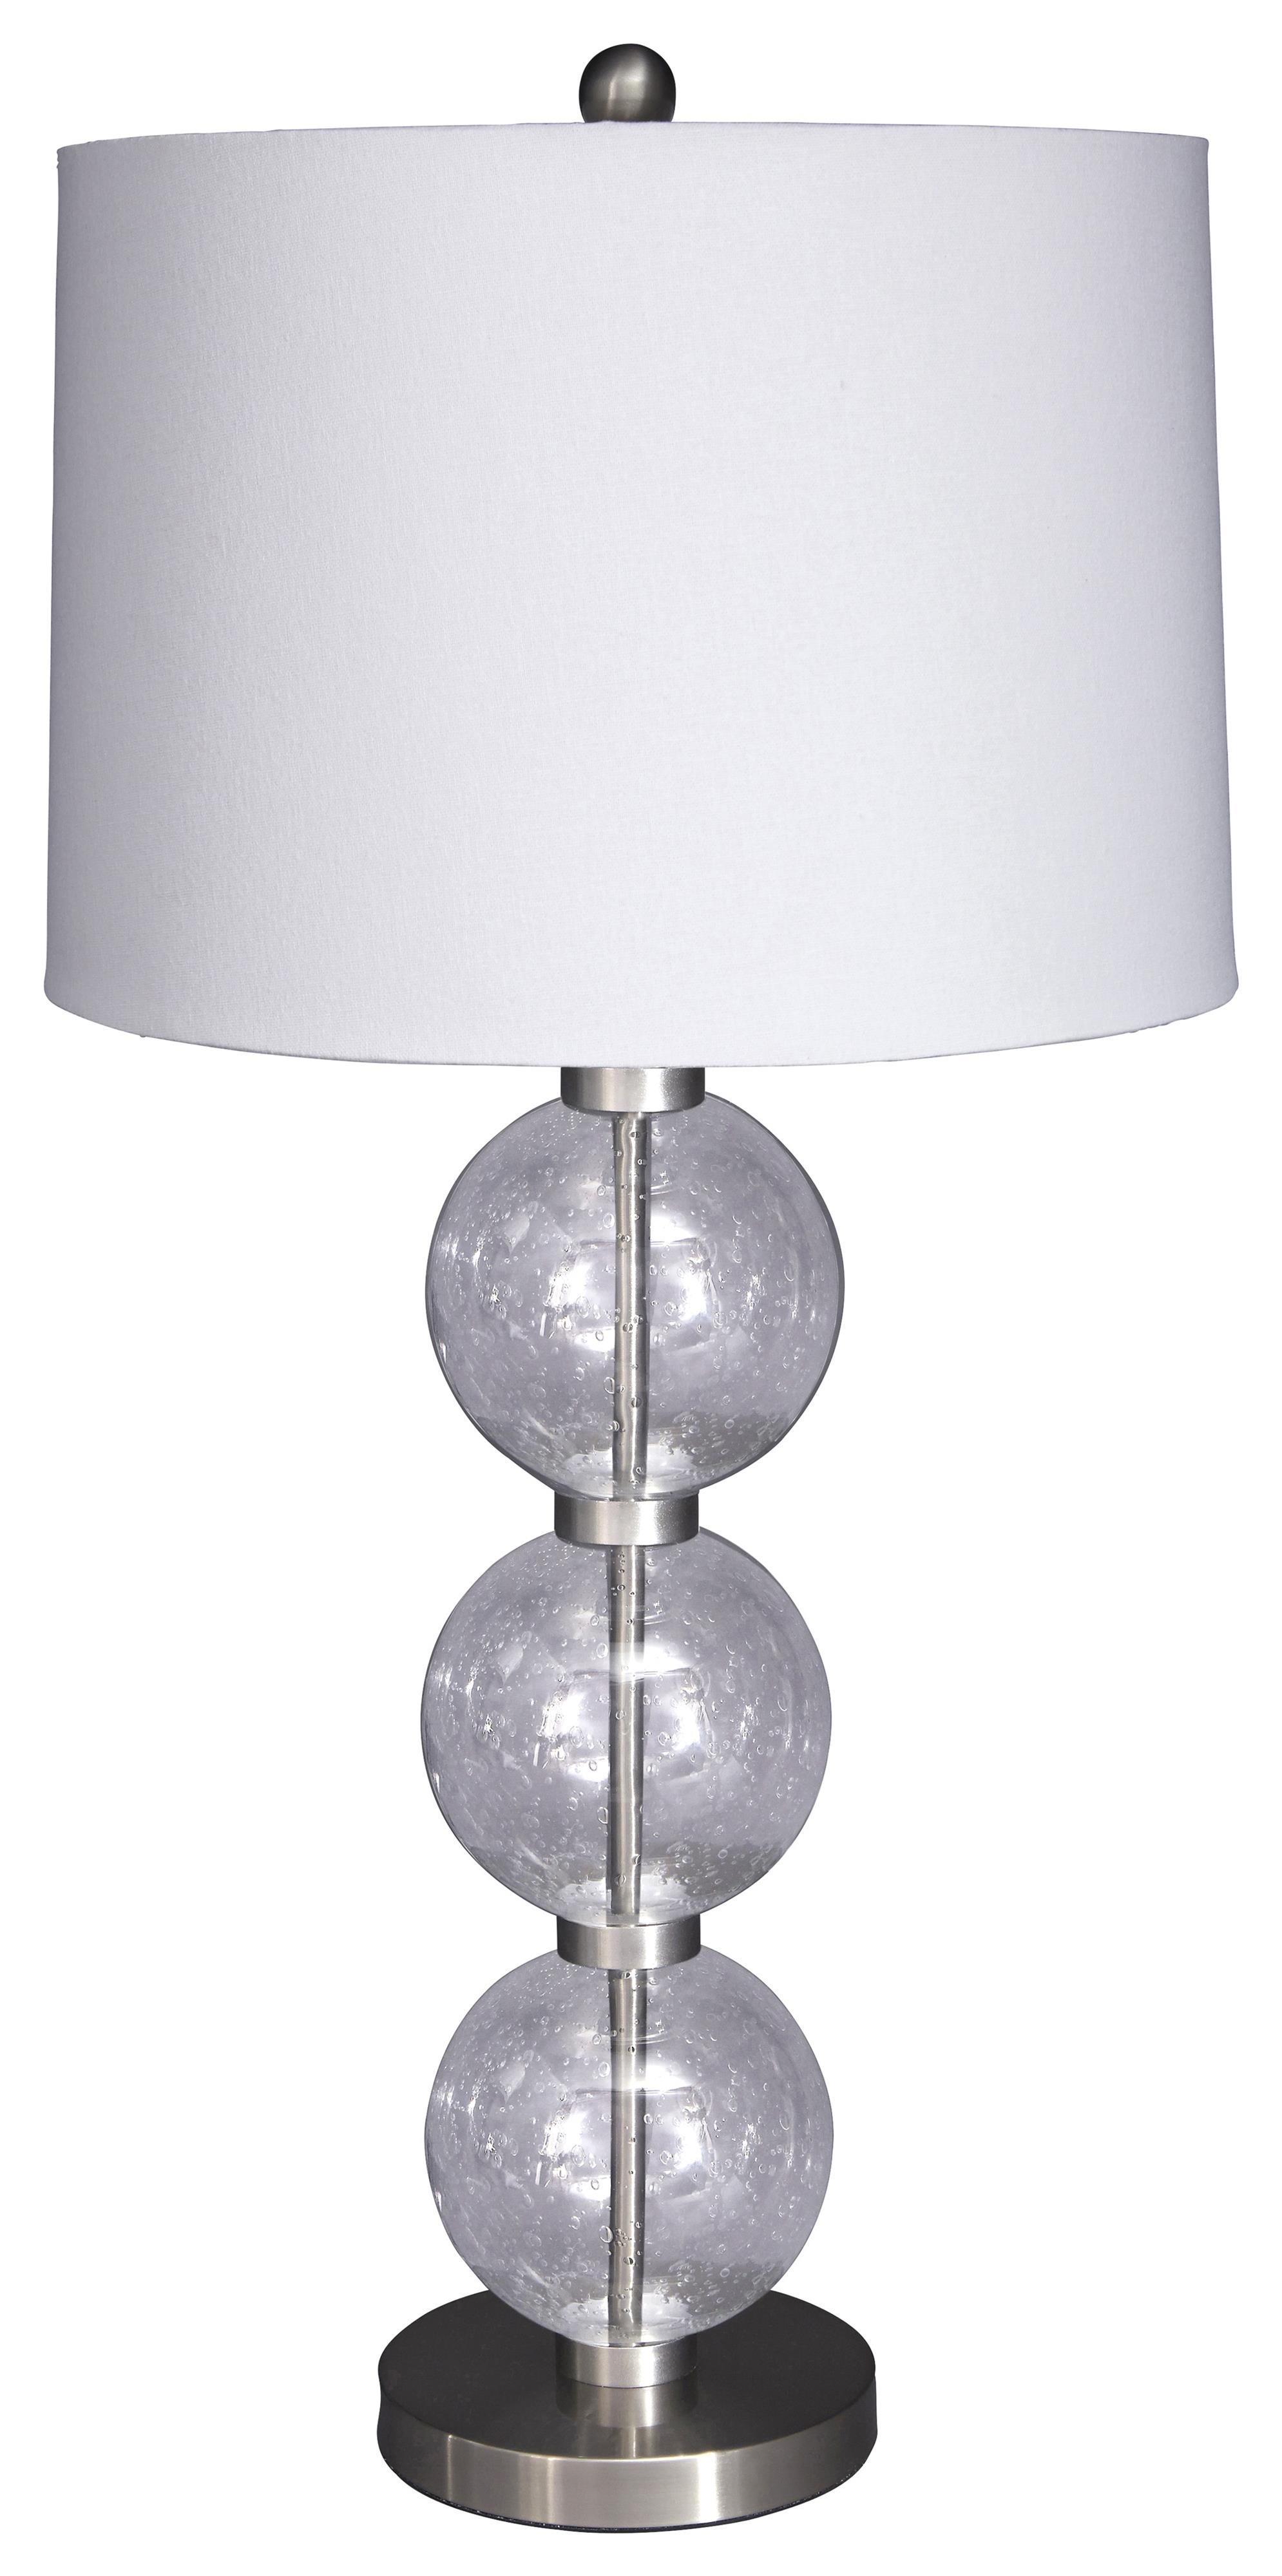 Signature Design by Ashley Lamps - Contemporary Shodan Glass Table Lamp - Item Number: L430074